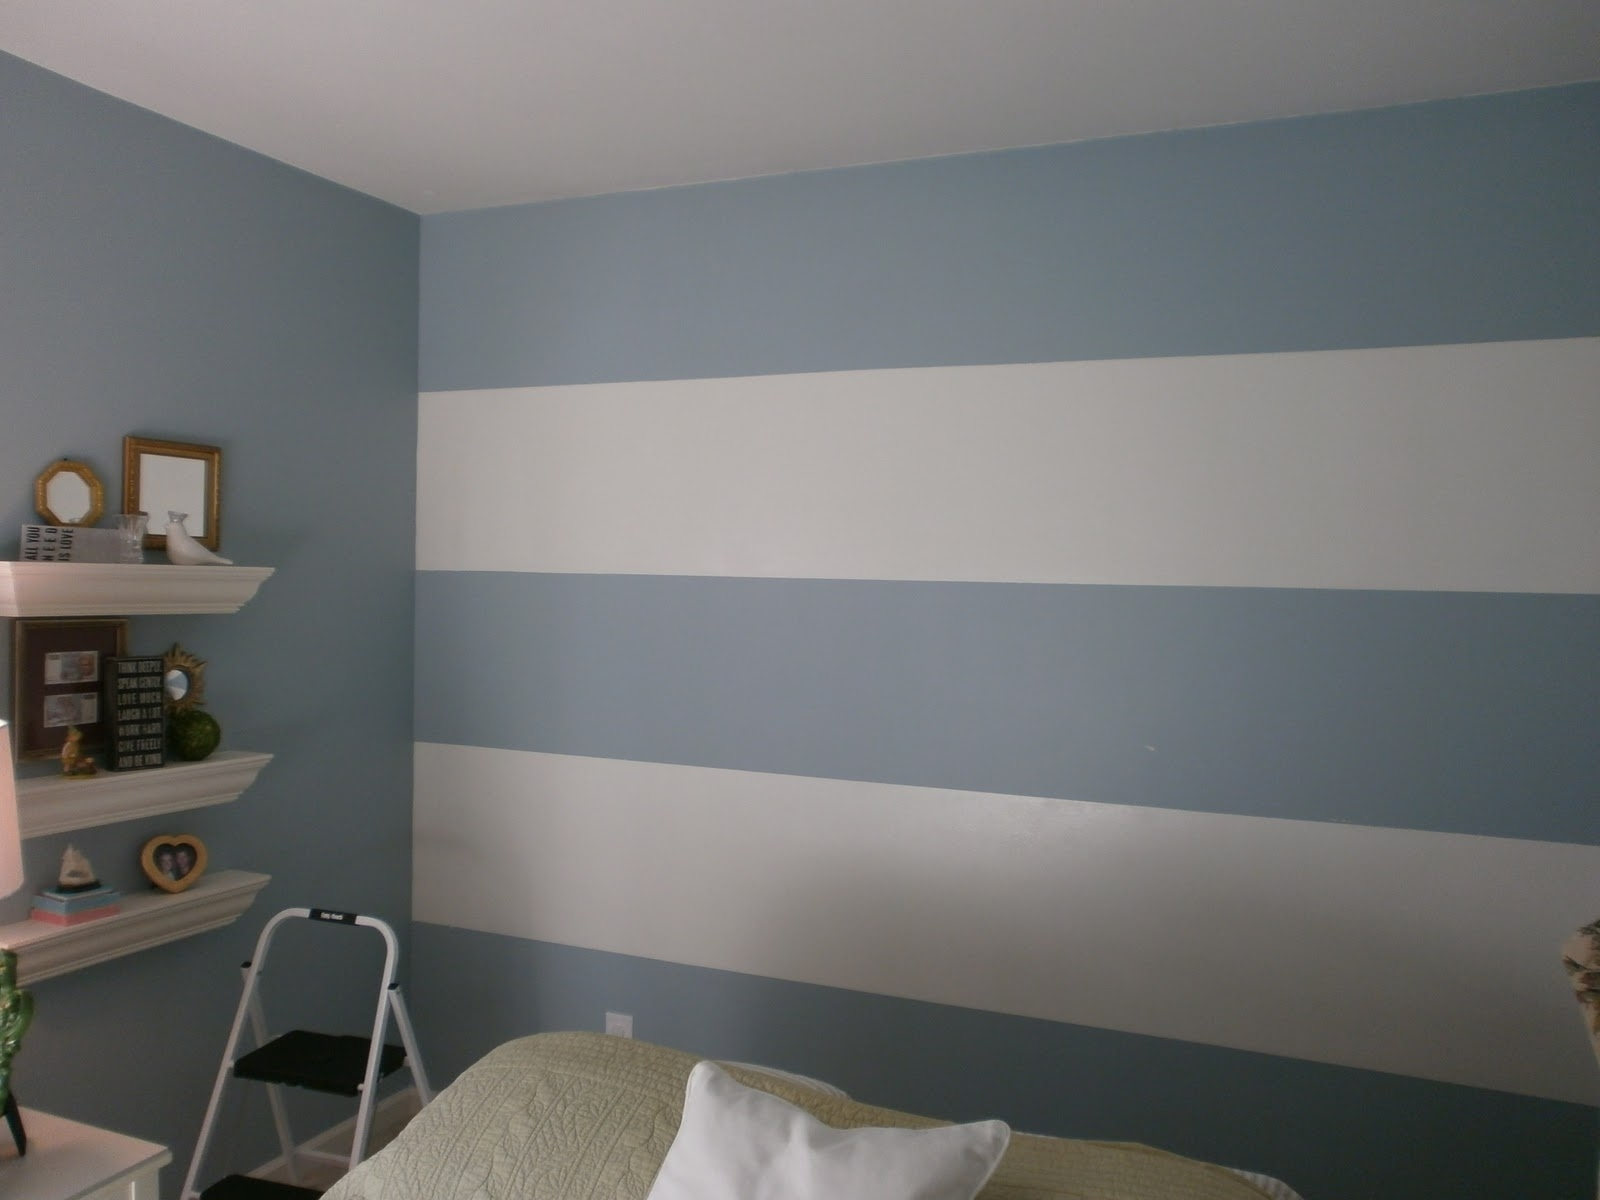 Stripes – Horizontal | Interiors | Pinterest | Room Ideas Regarding Most Recently Released Horizontal Stripes Wall Accents (Gallery 1 of 15)